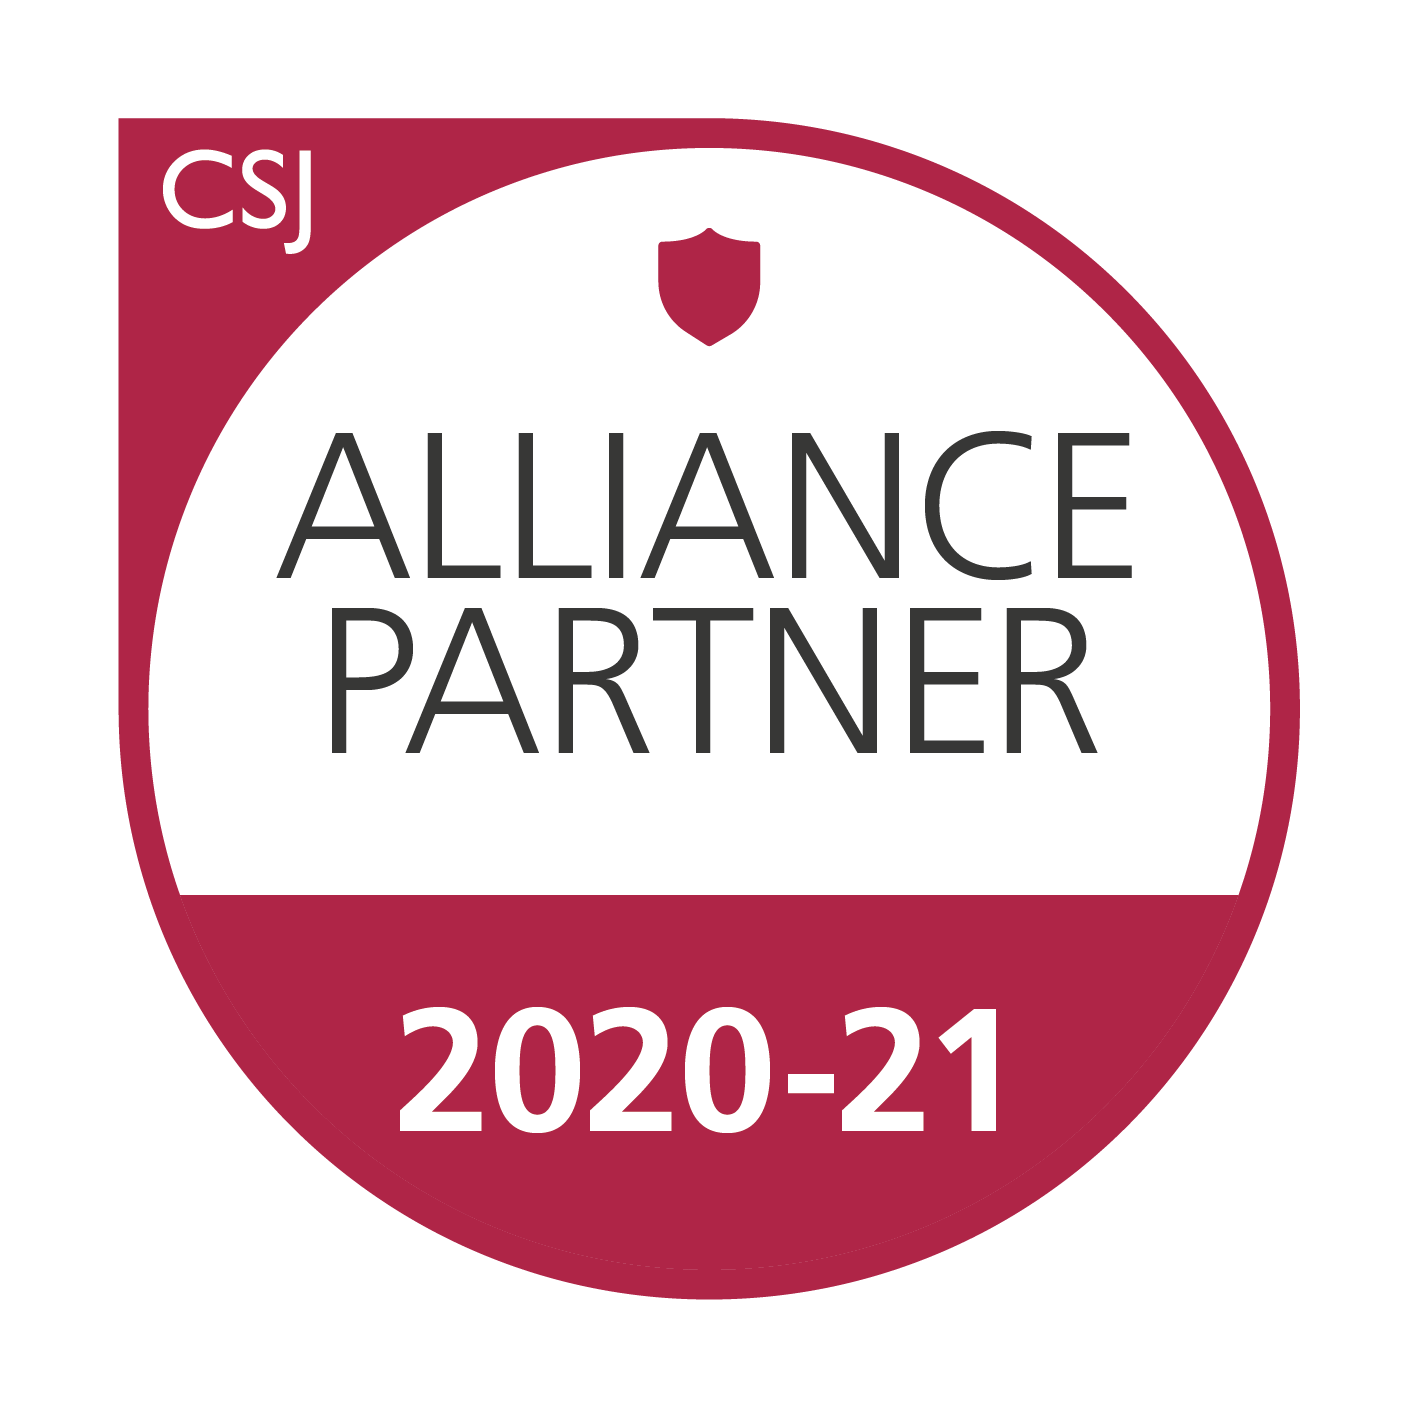 CSJ_Alliance_Partner-2020-21